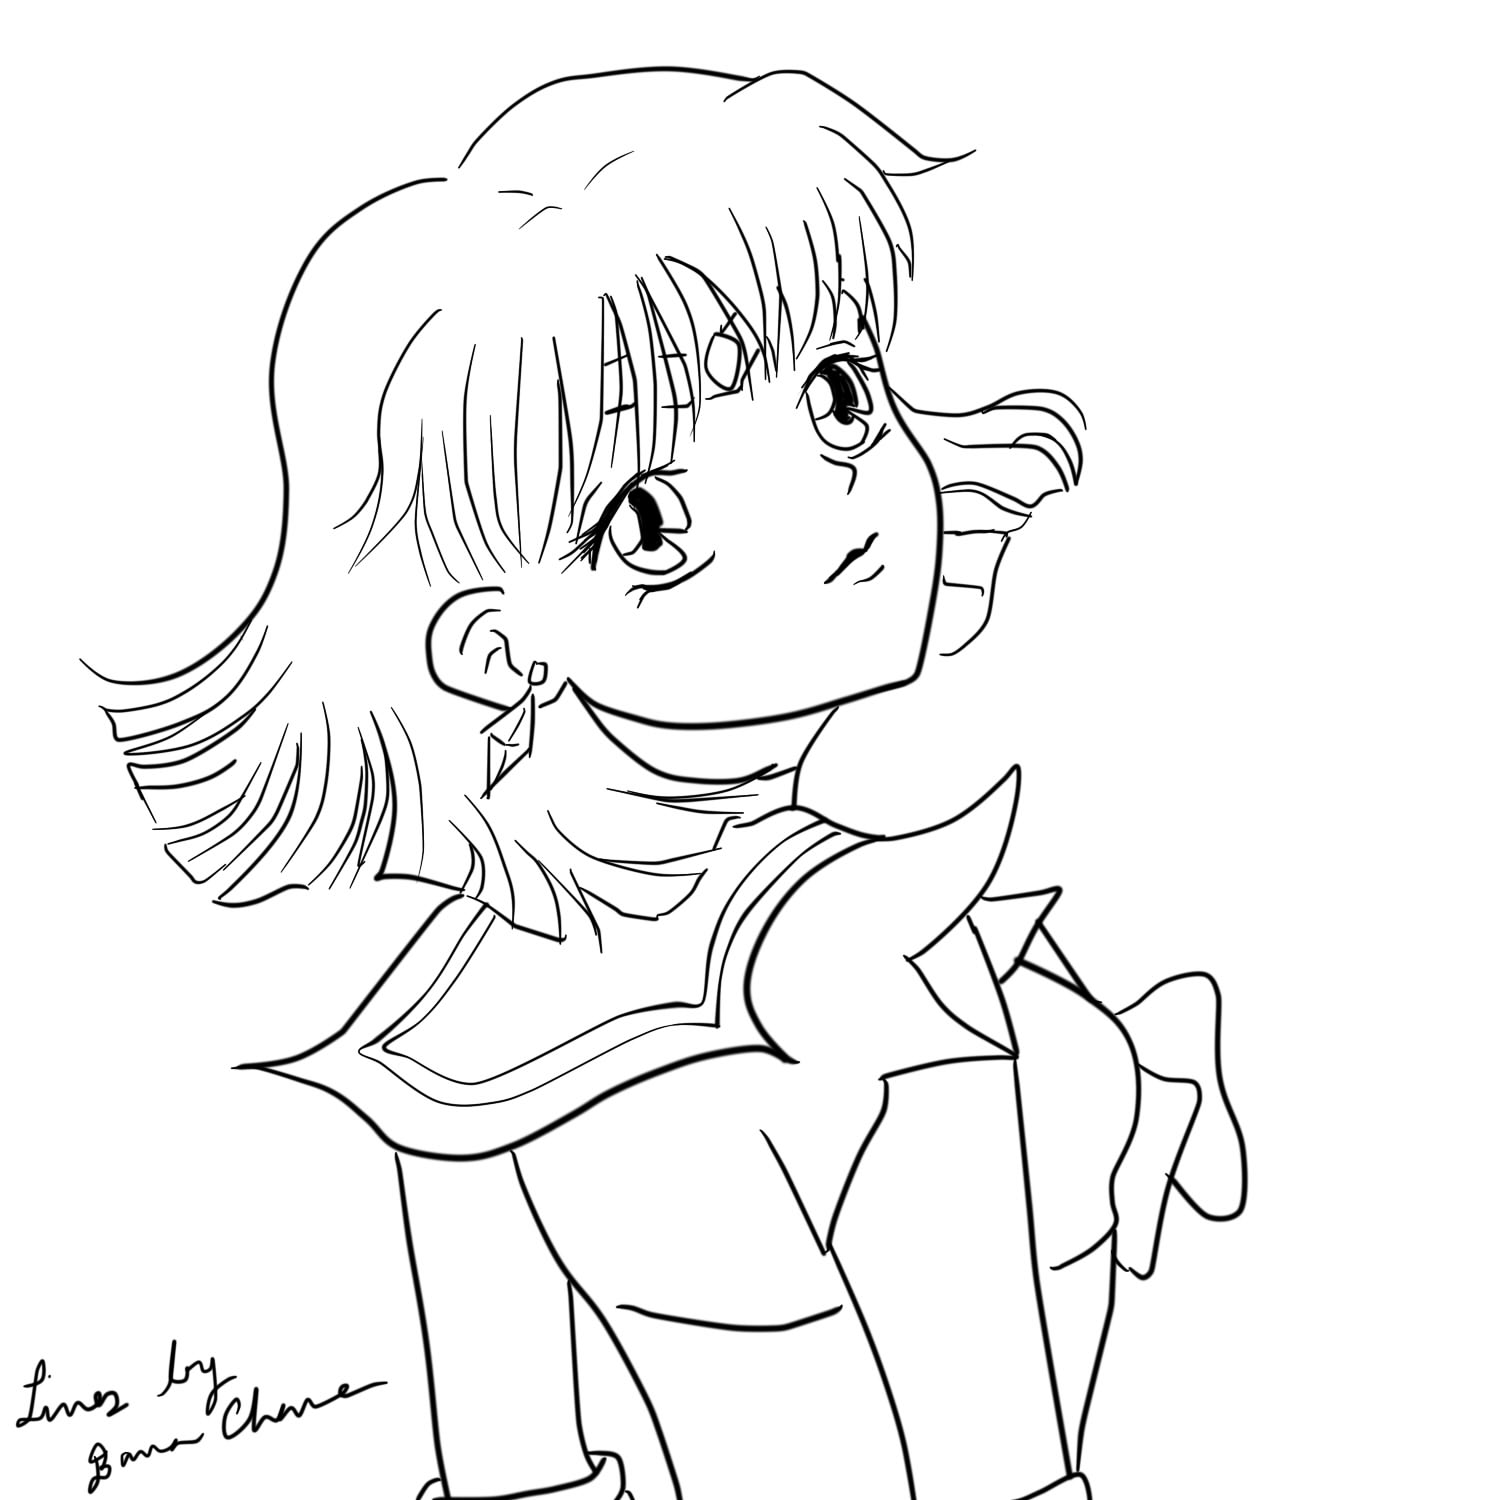 sailor moon coloring pages saturn - photo#24